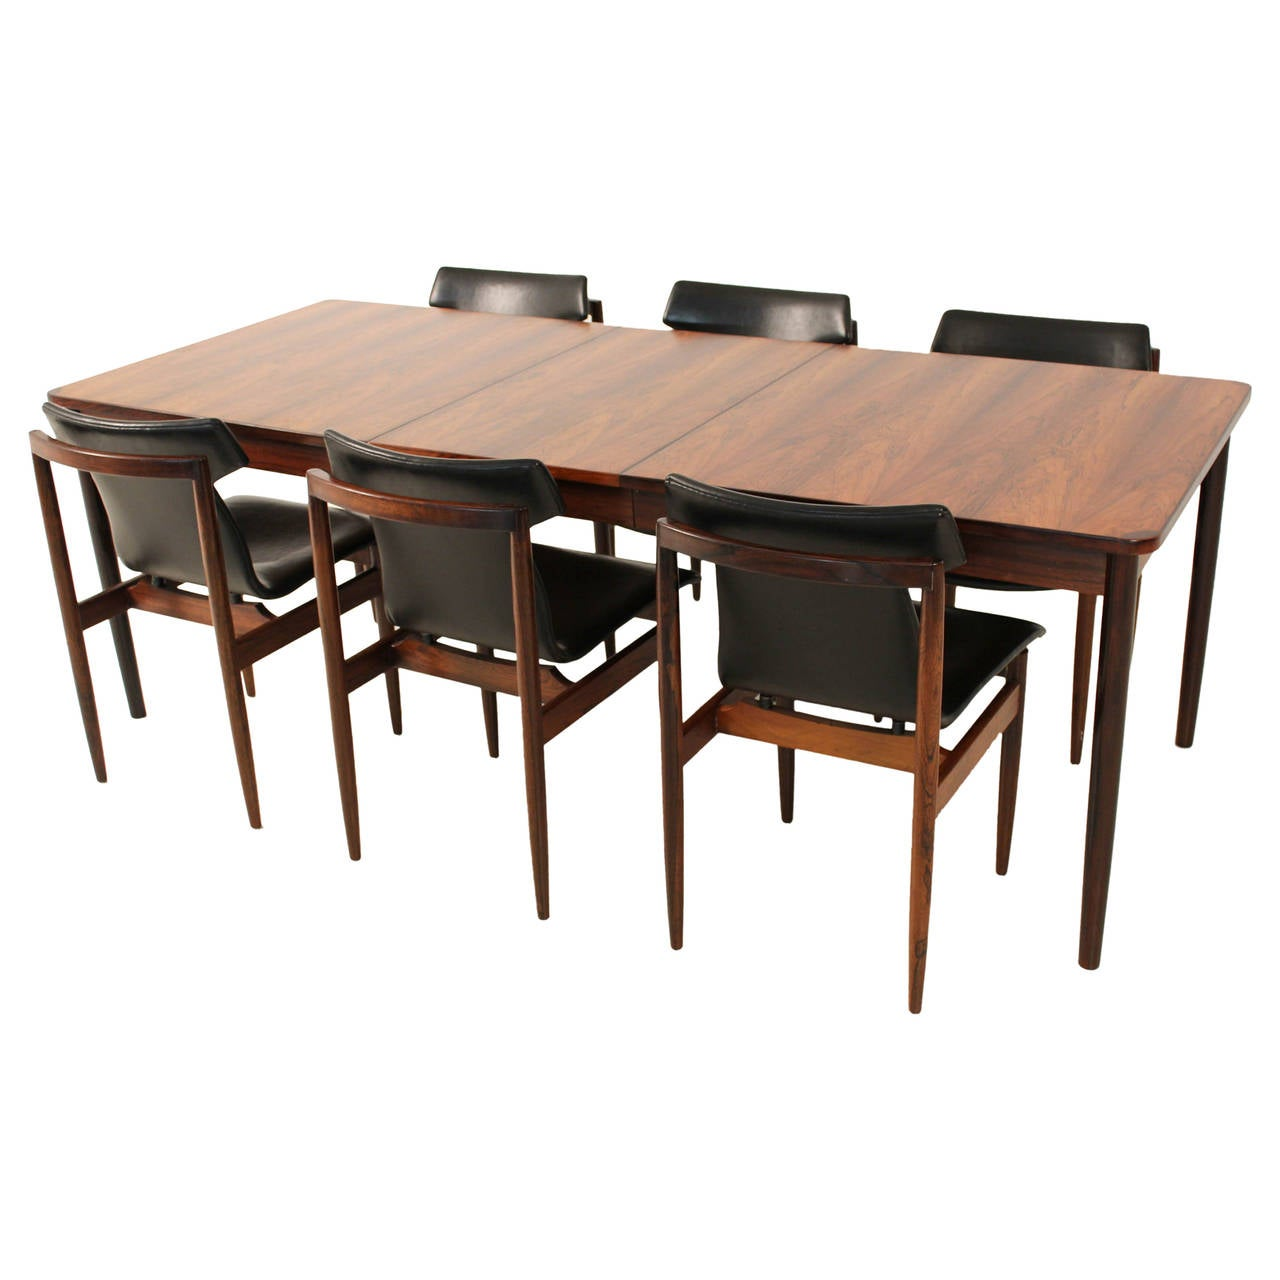 Mid Century Modern Dining Table By Fristho At 1stdibs